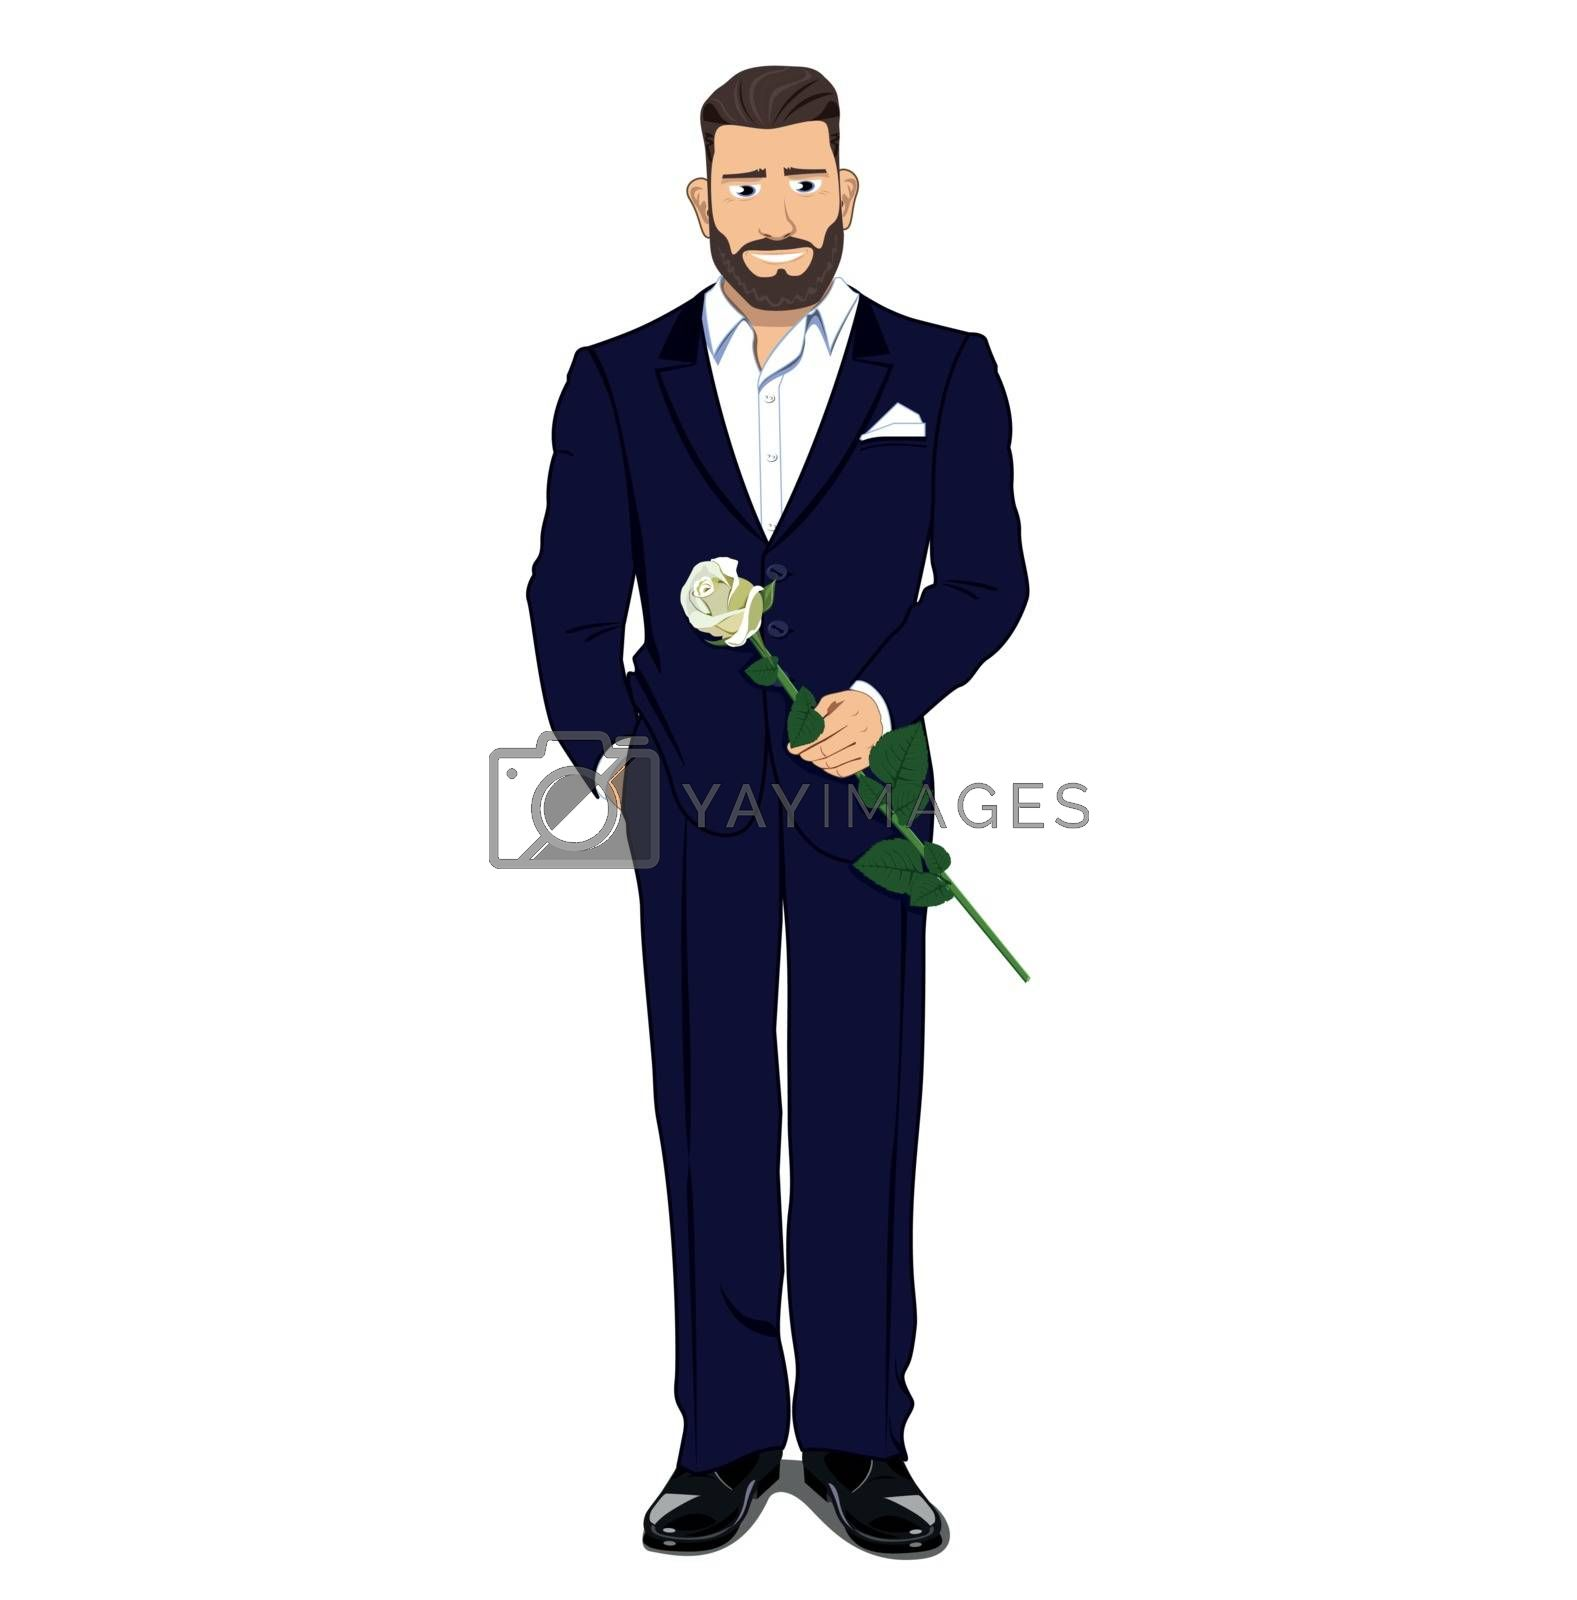 Royalty free image of Man by liana2012